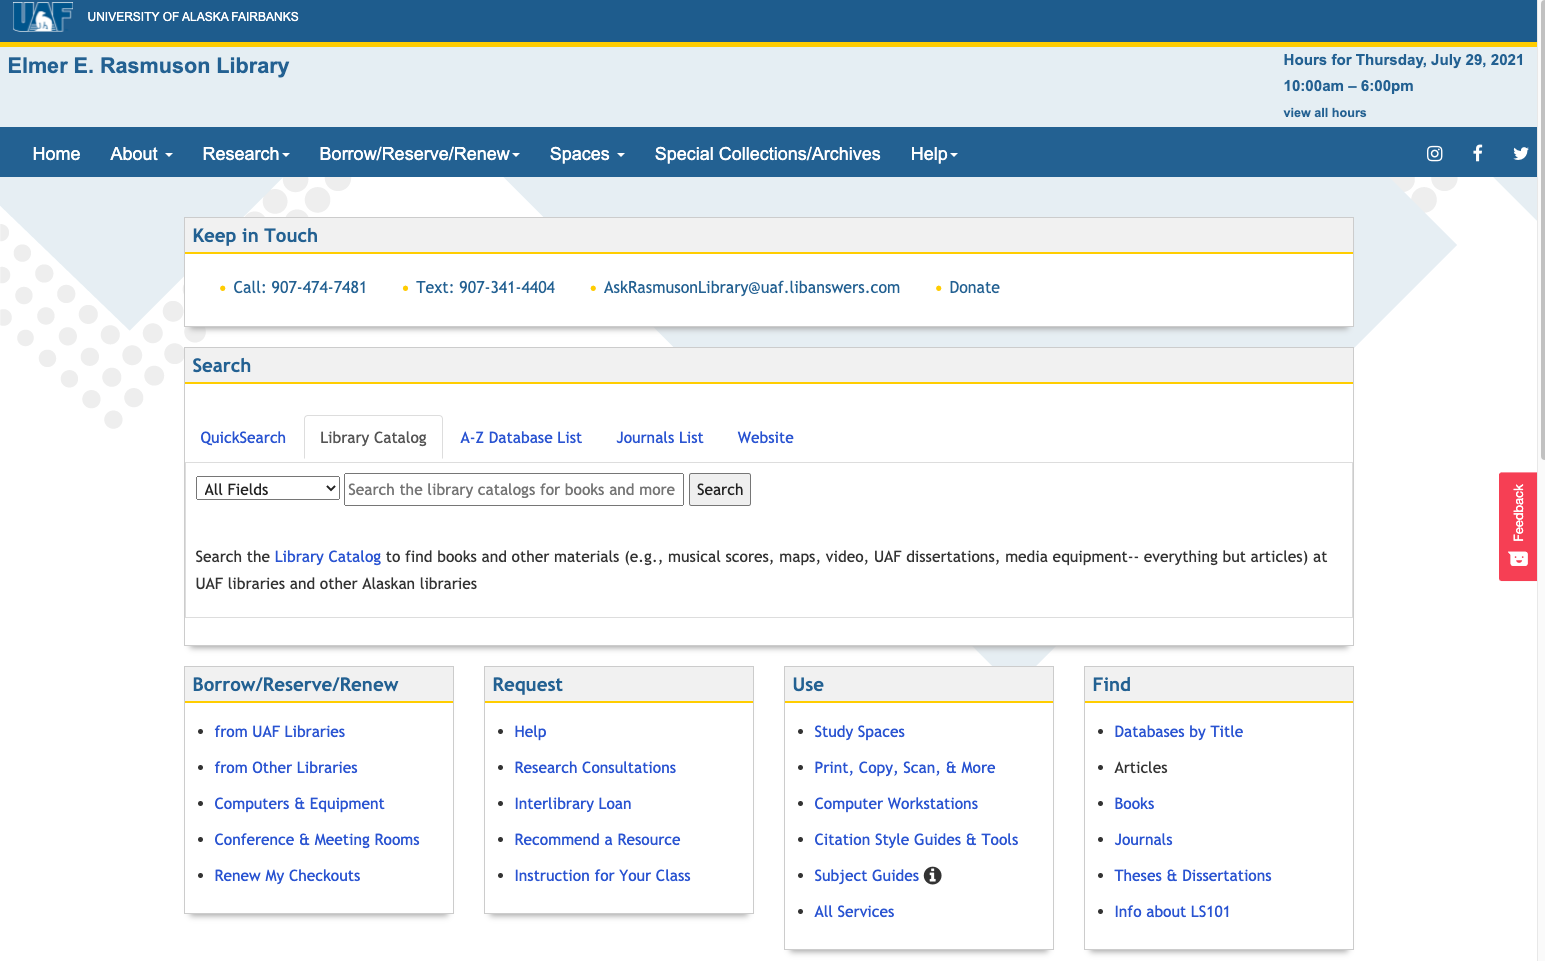 Screenshot of the new library website